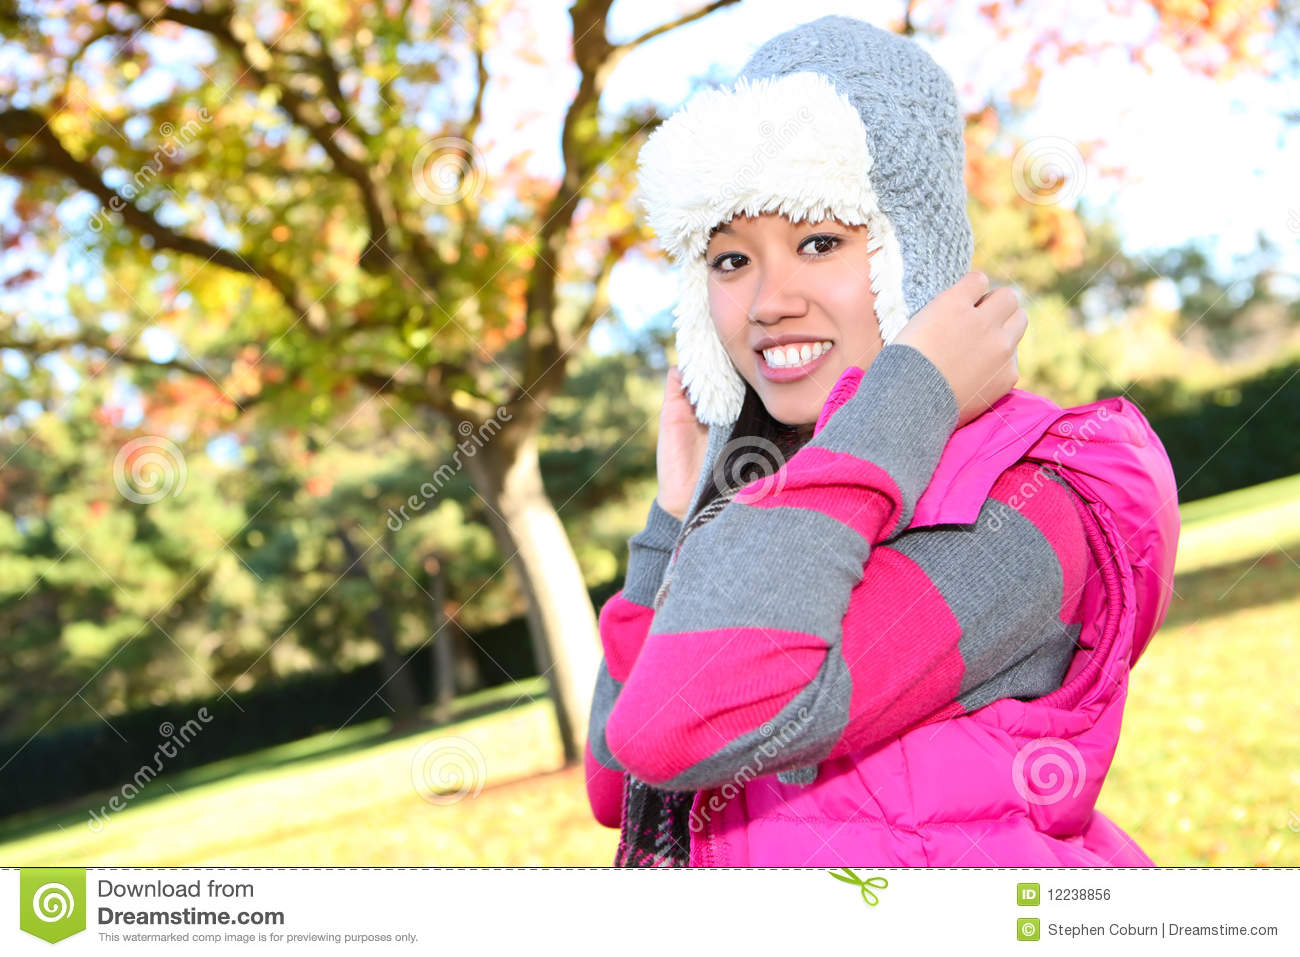 winter park single asian girls Find meetups in orlando, florida about social and meet people in your local  community who  asian social orlando  winter park/orlando ladies, 50s-60s.